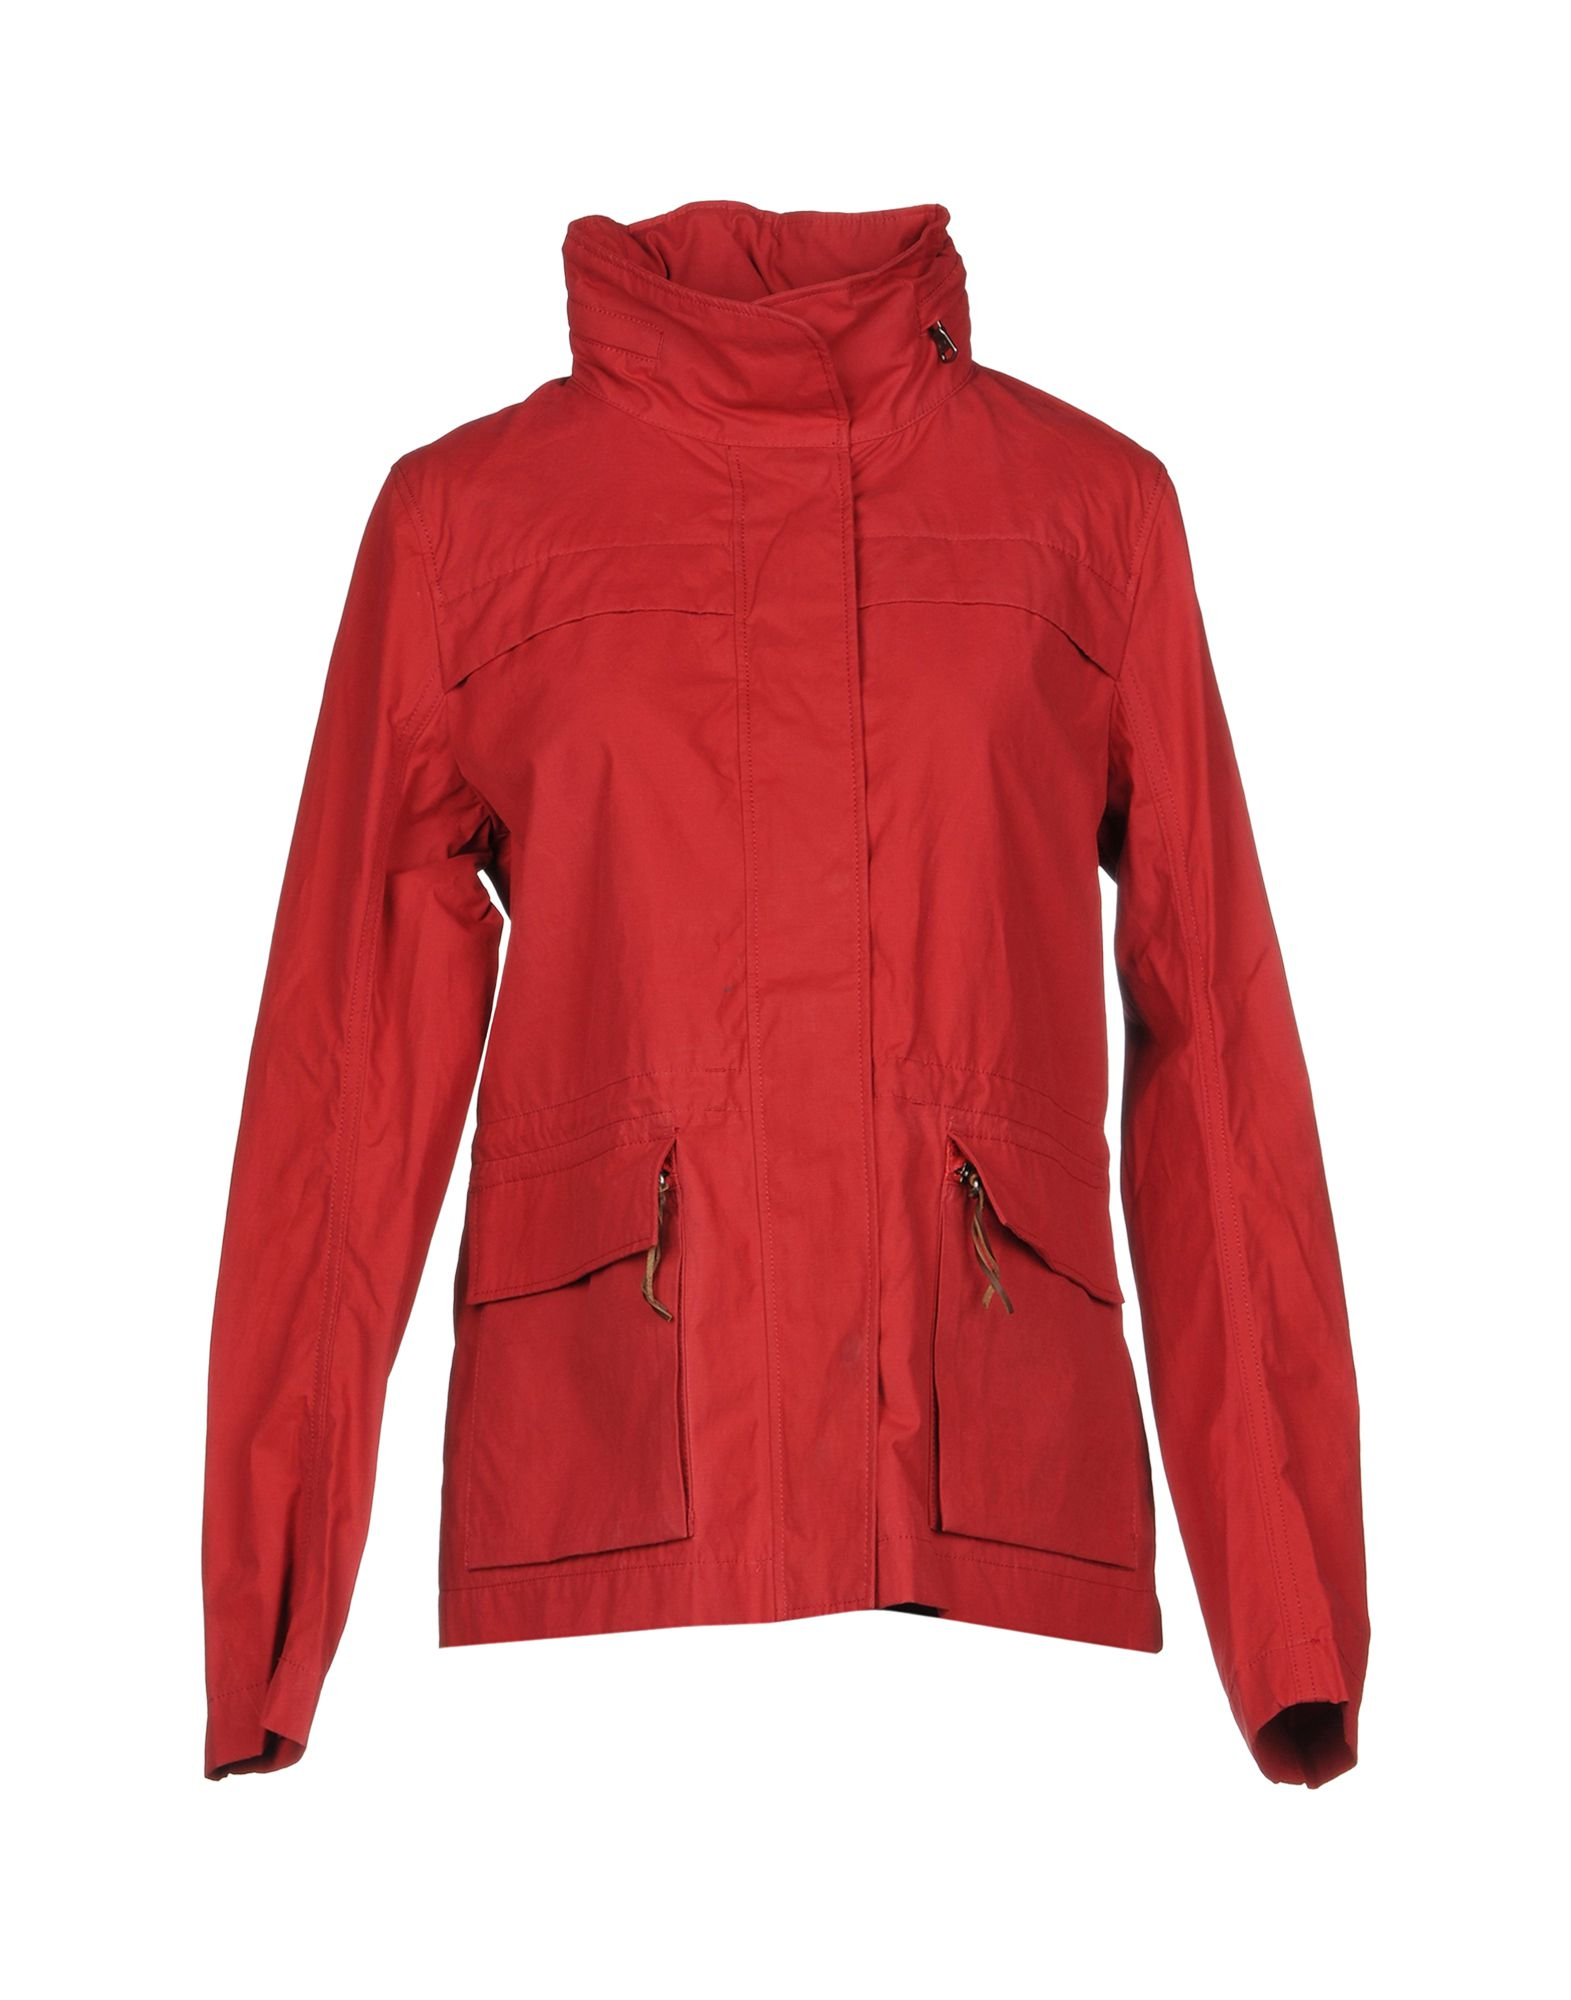 AIGLE Jacket in Red